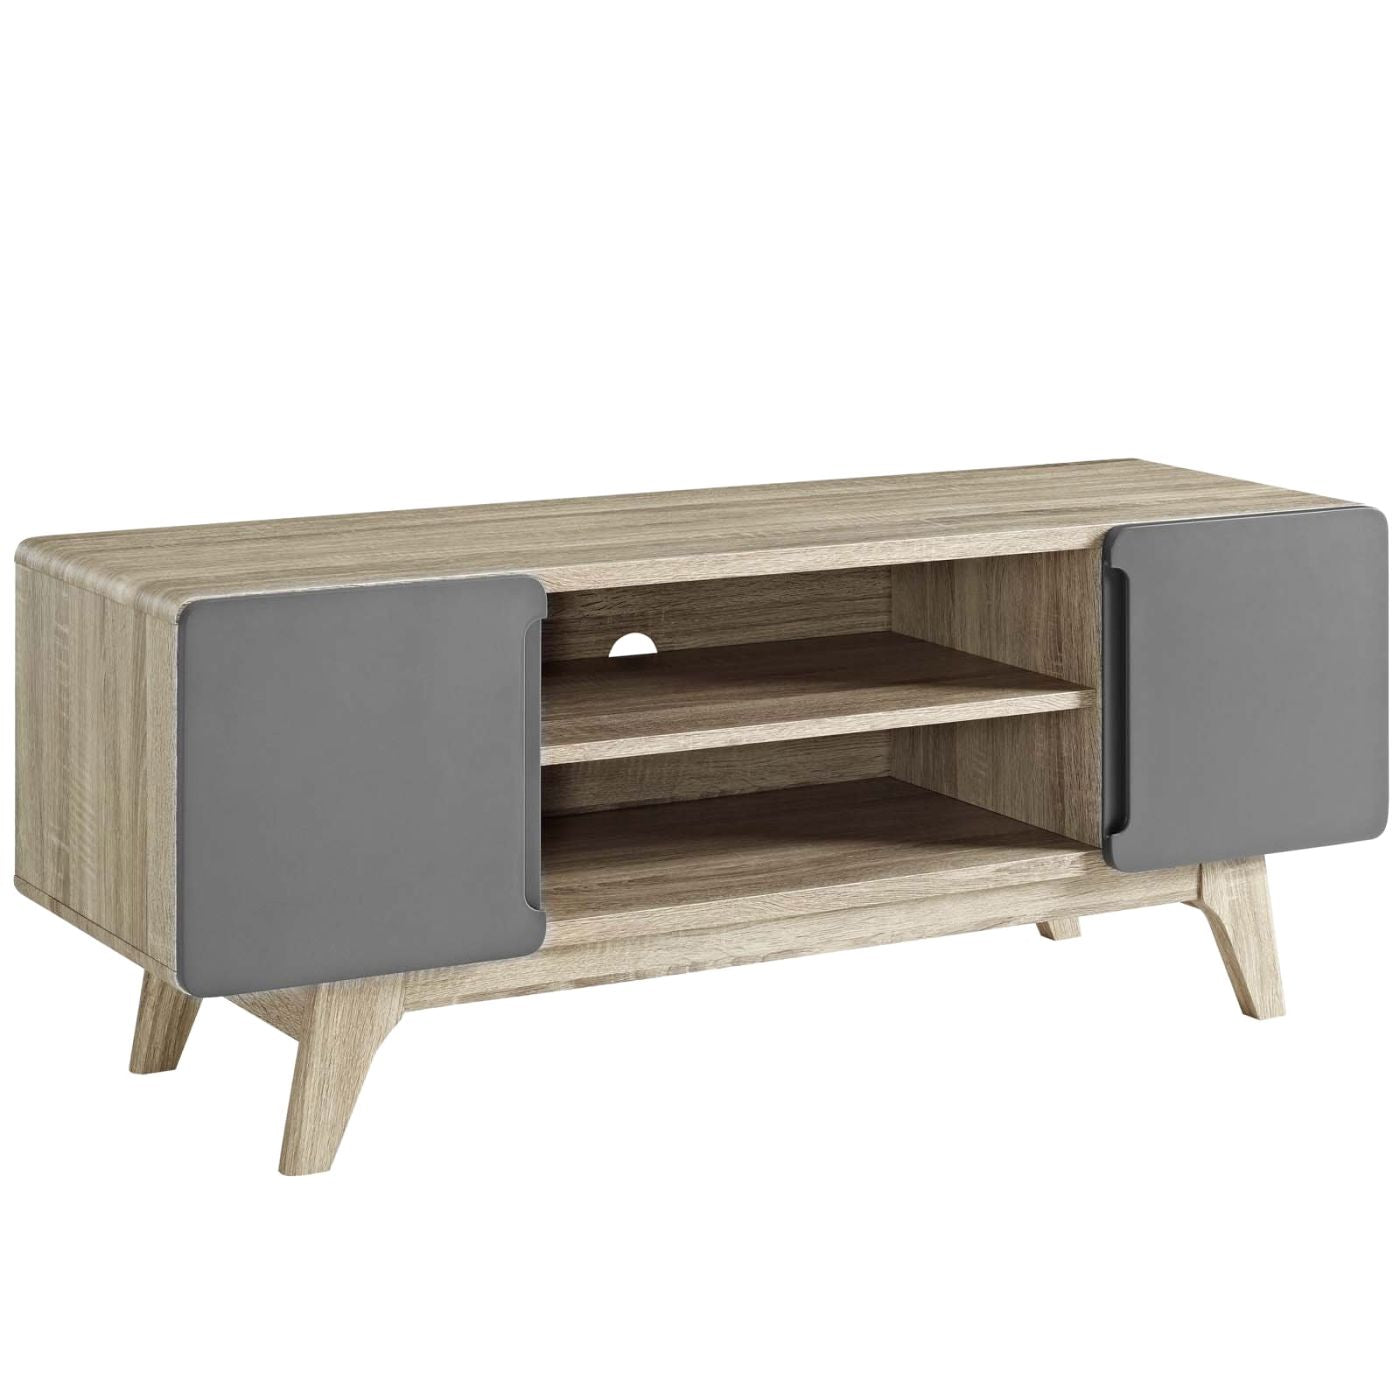 Tread 47 Mid Century Modern Tv Stand Walnut Or Natural Wood Gray  Entertainment ...